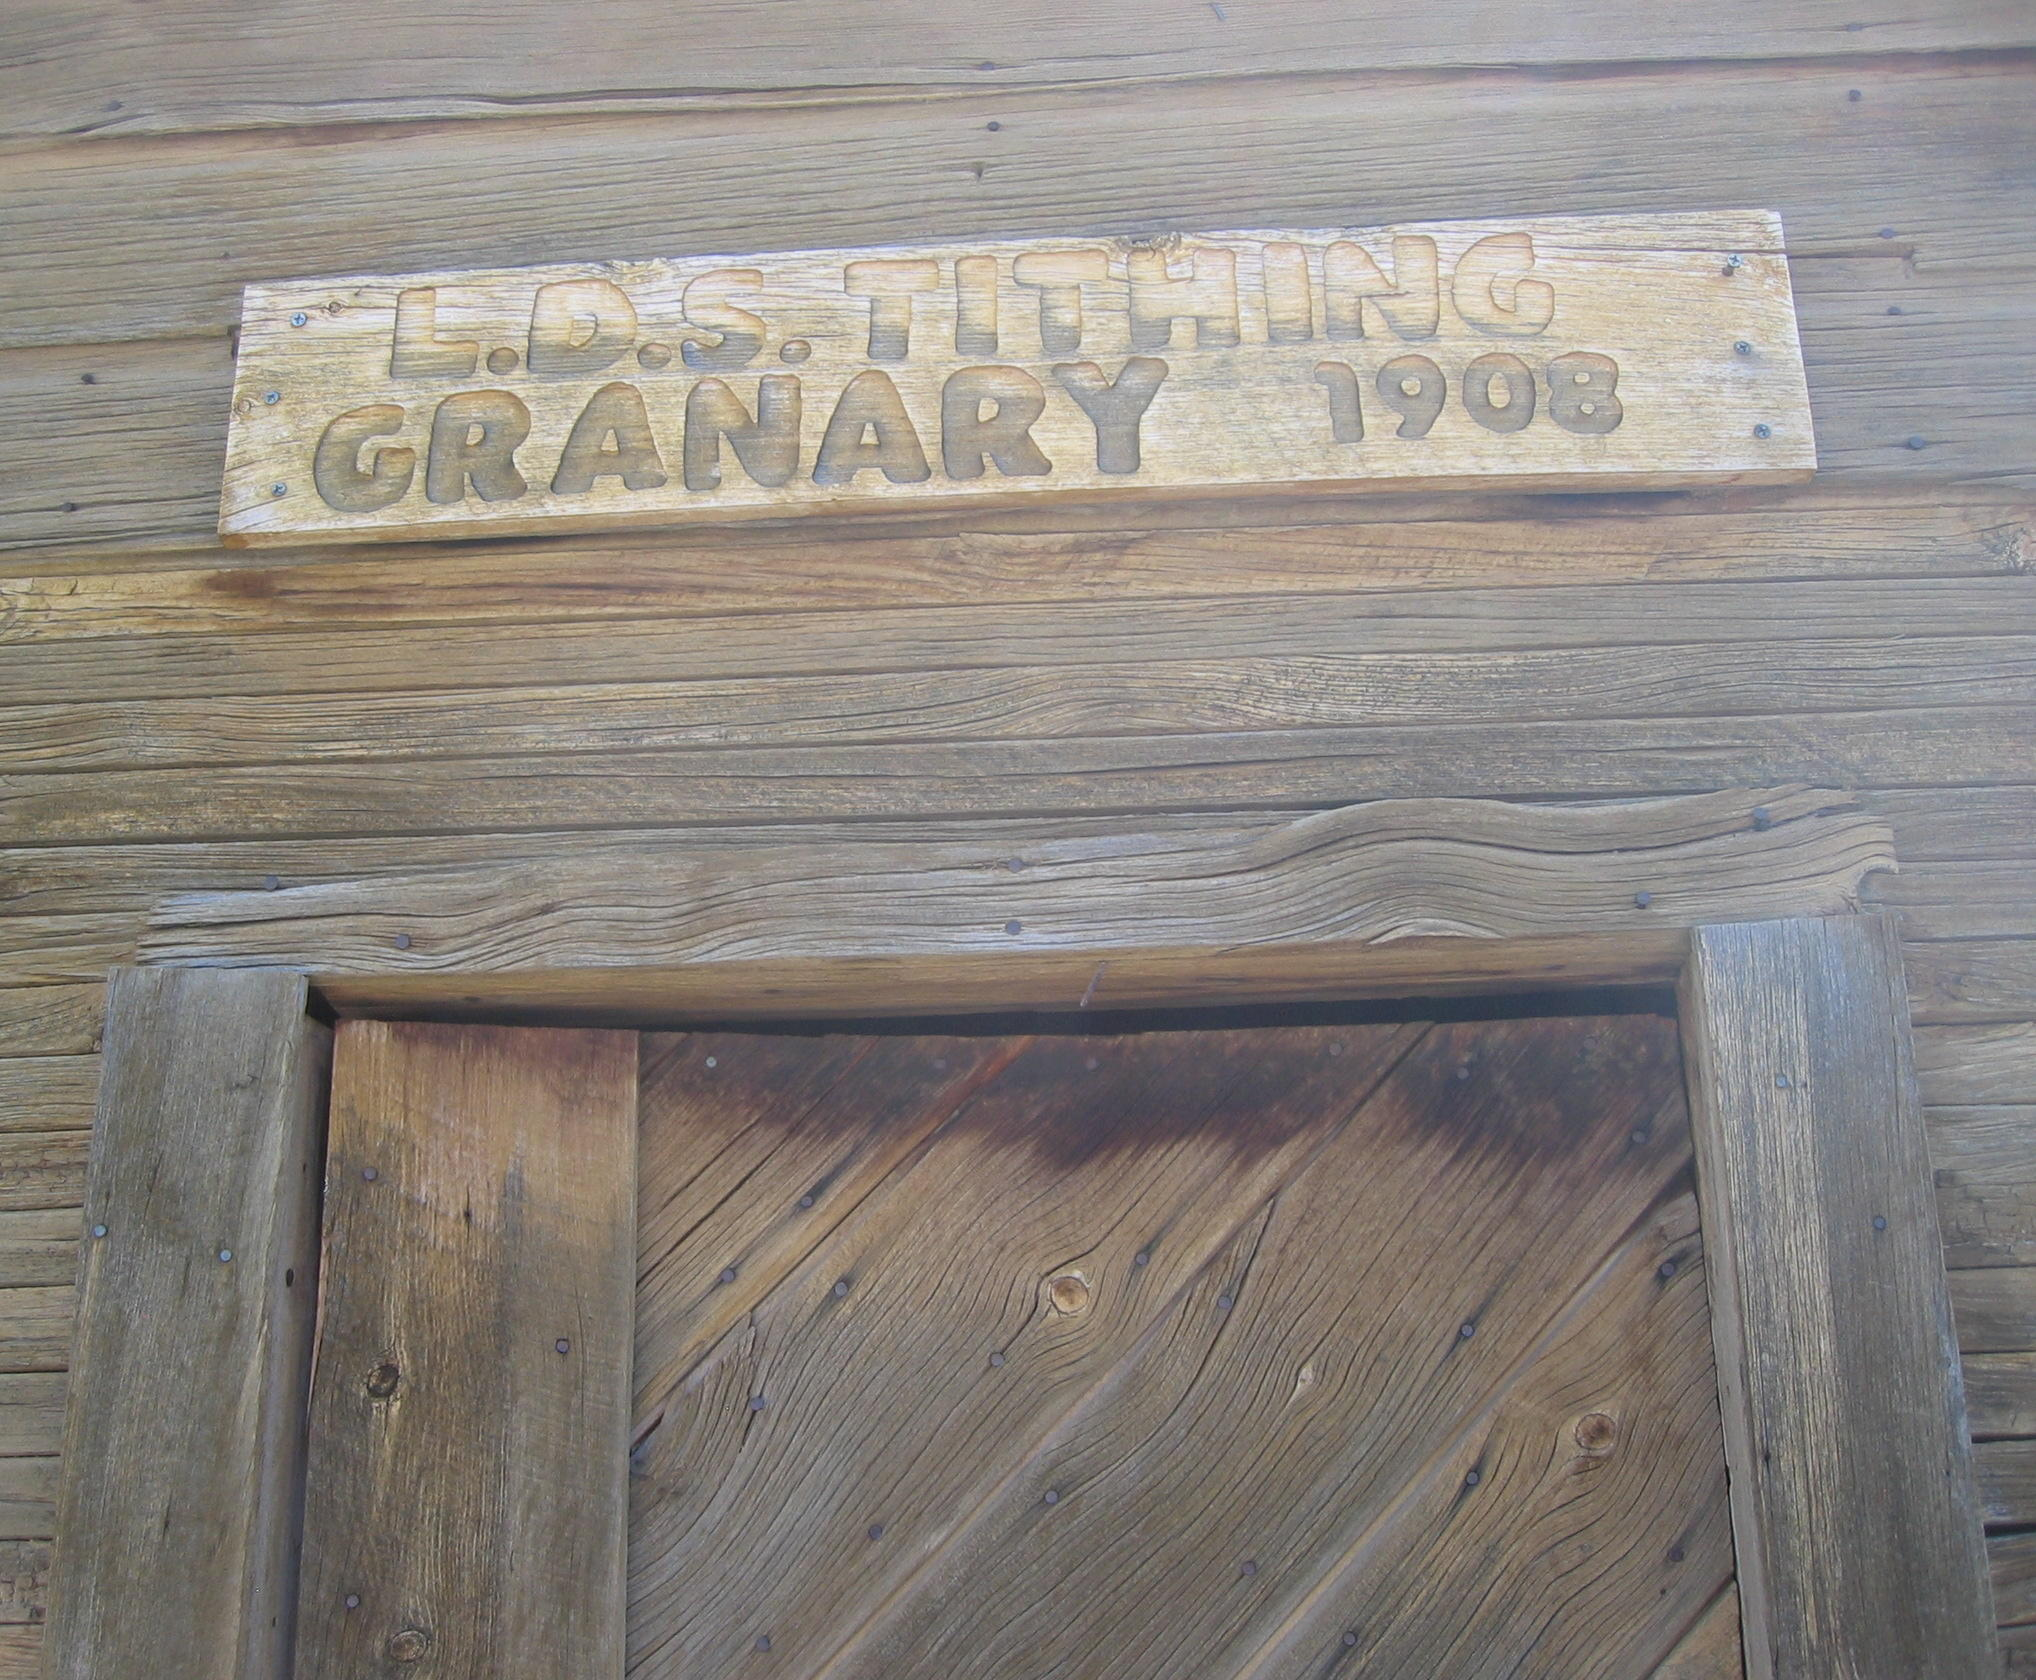 Sign above the door of the Enterprise Ward Tithing Granary